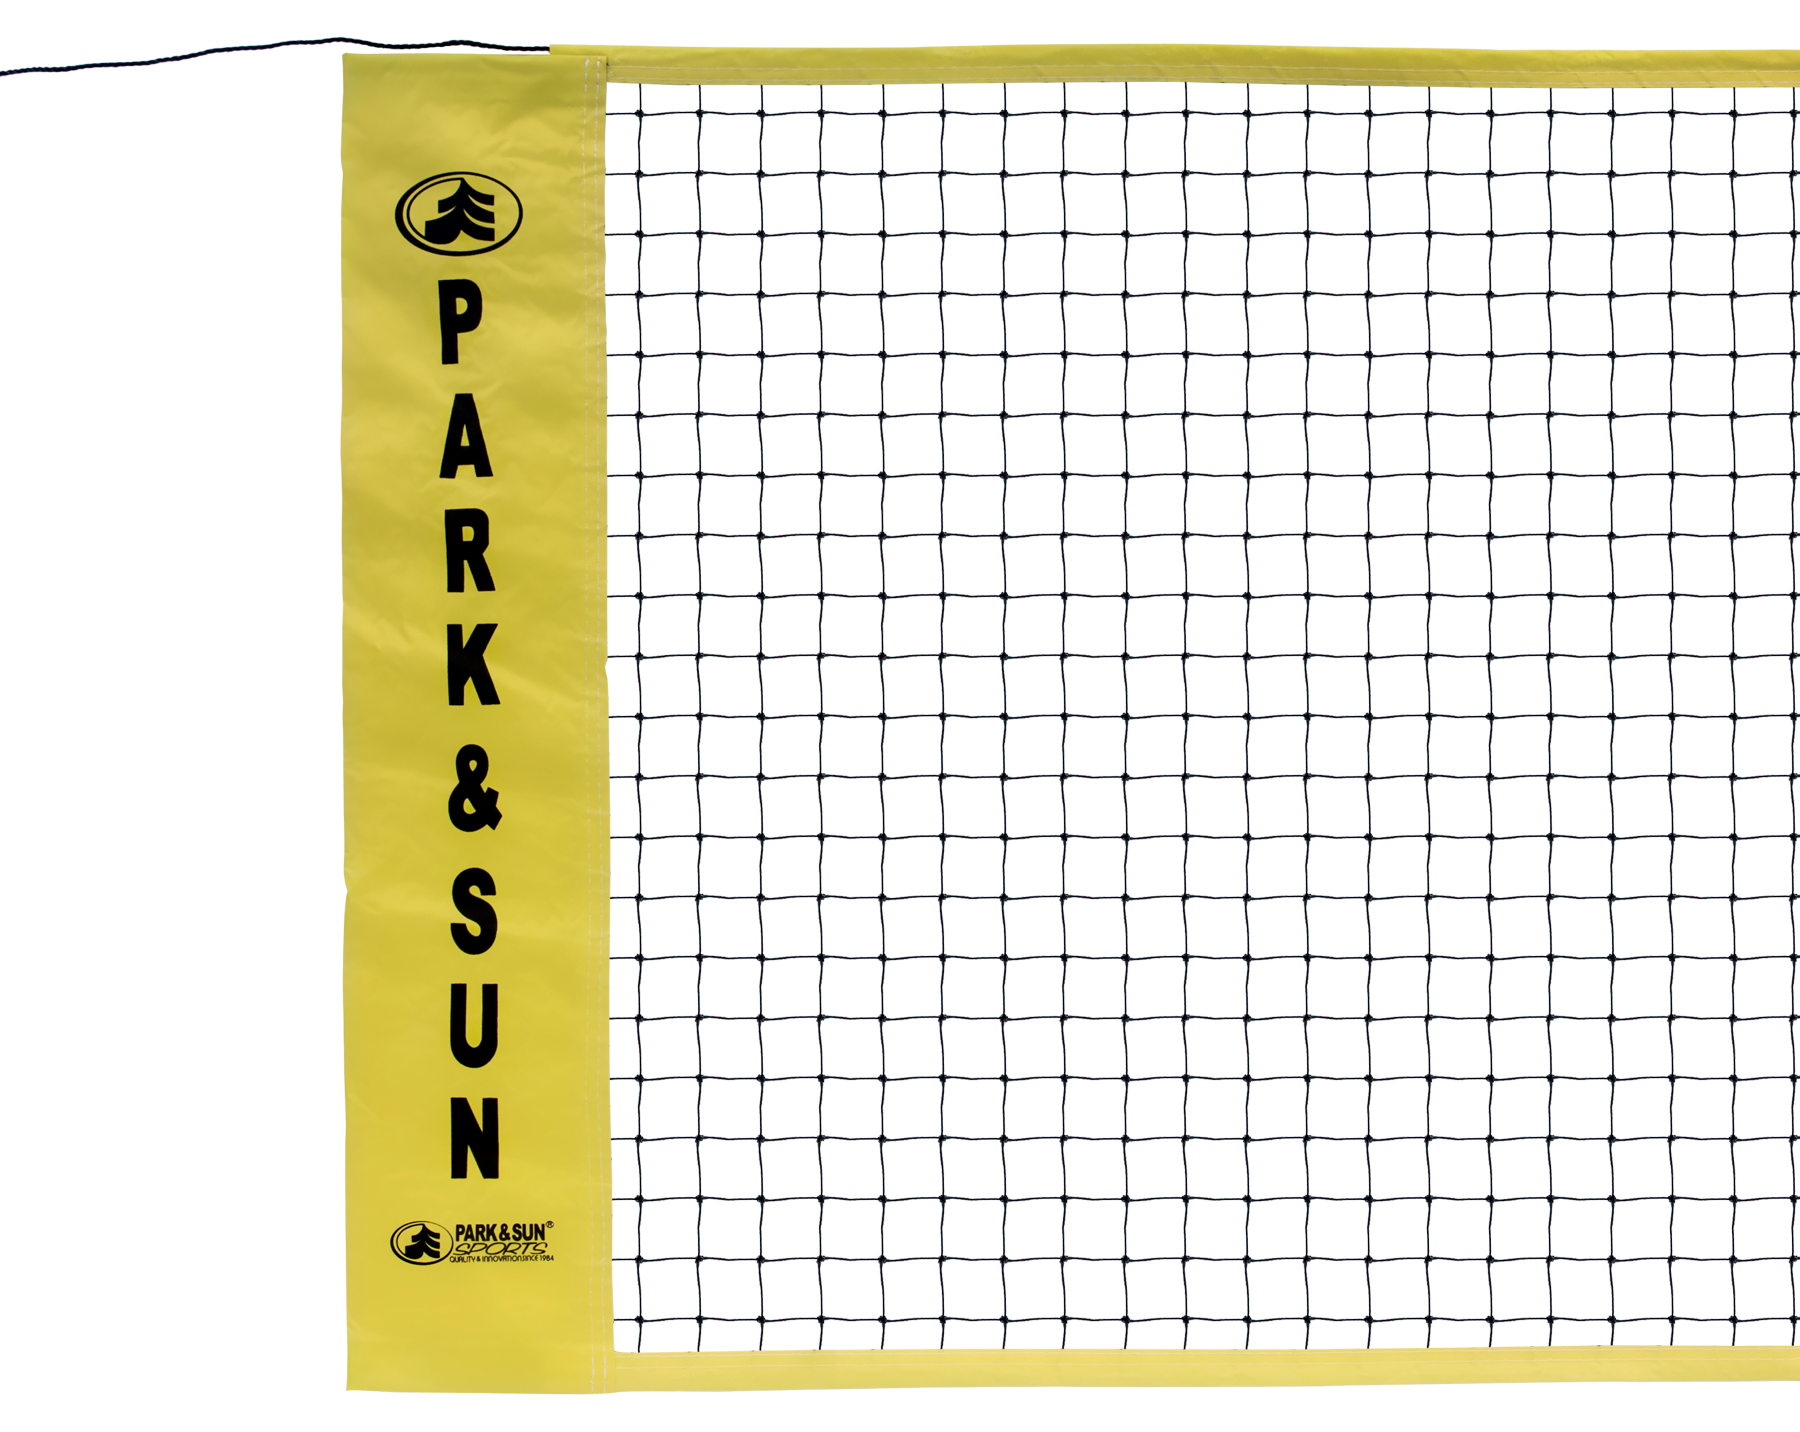 Quality Regulation Size Yellow Badminton Net 30 Inches X 21 Feet Park And Sun Sports